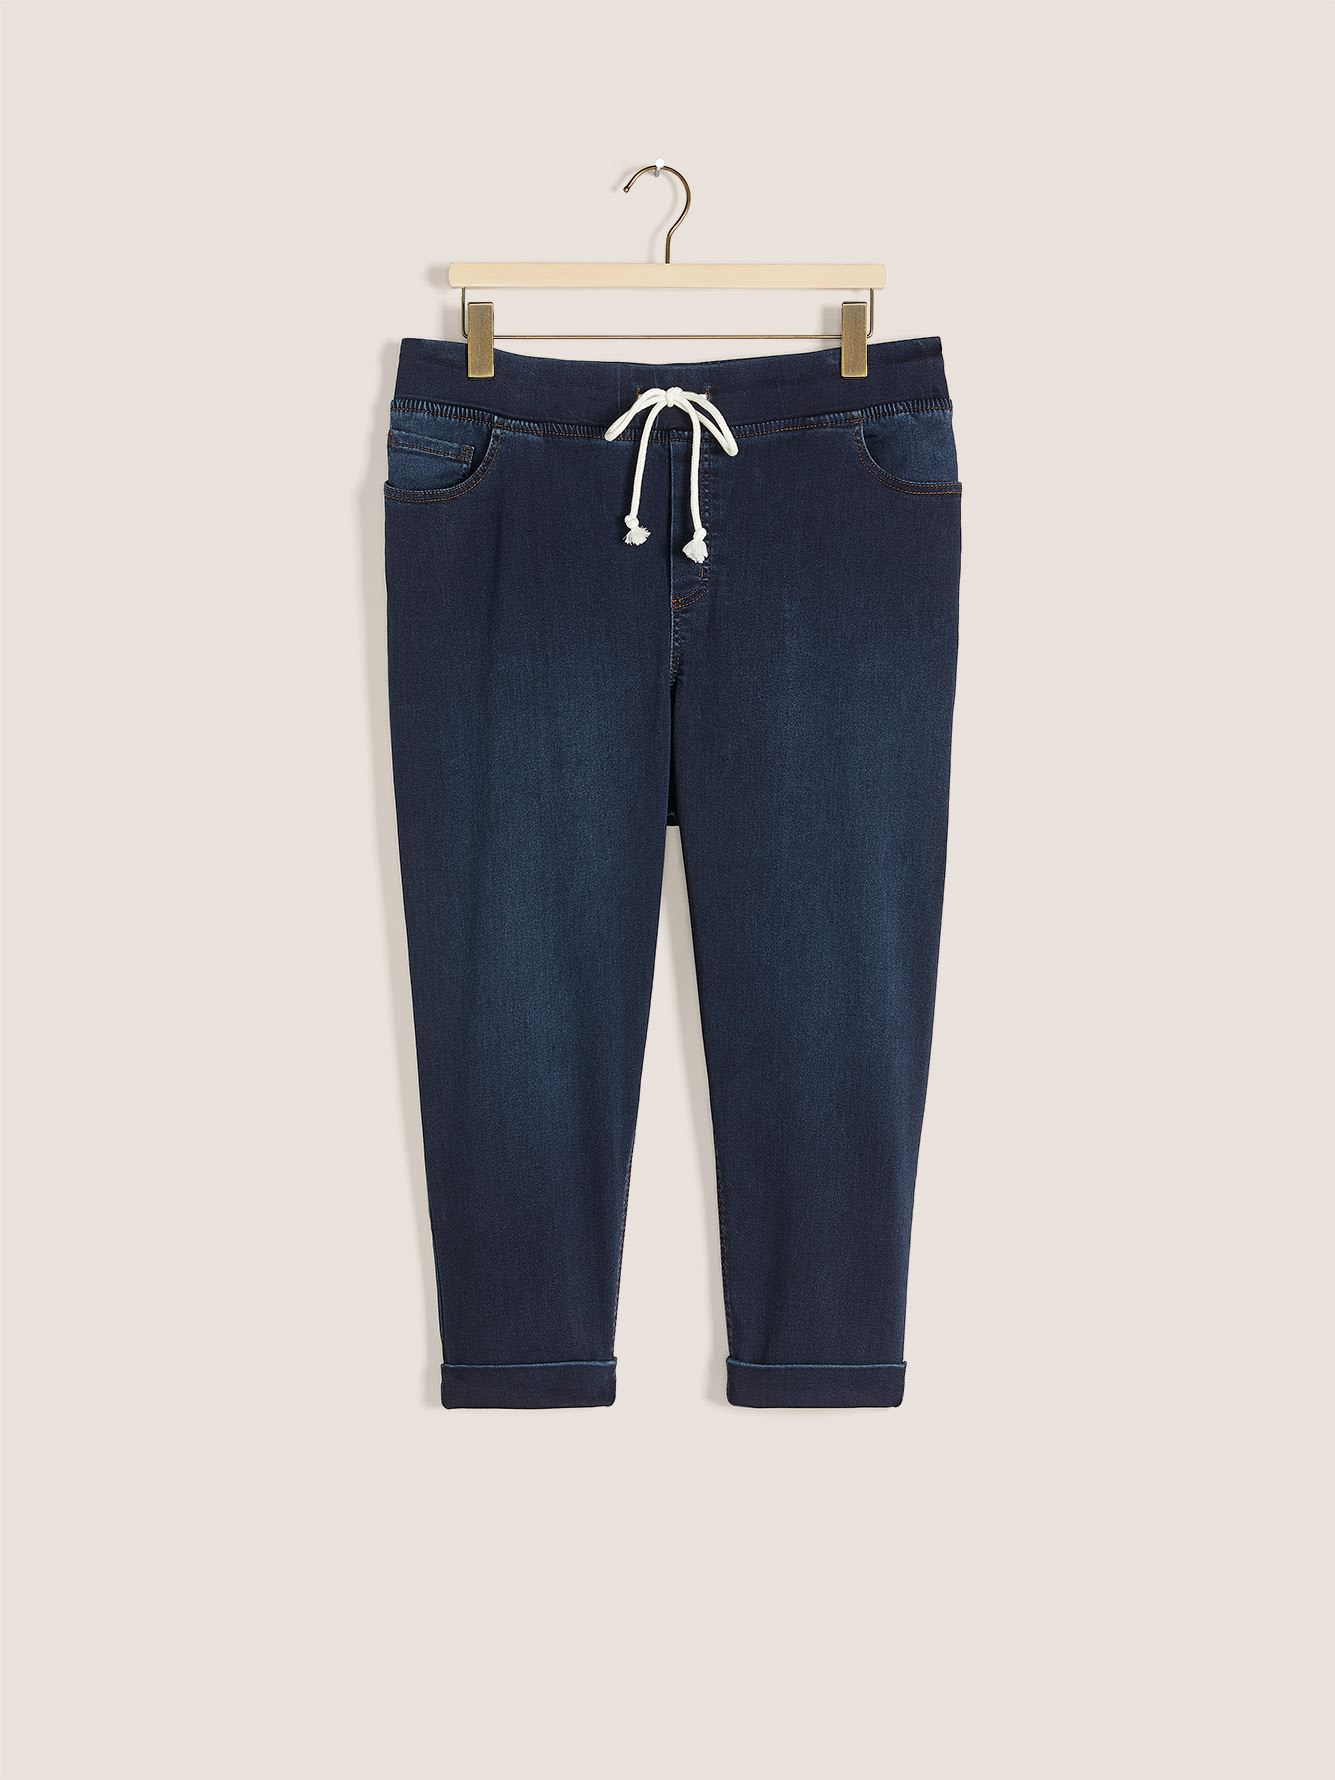 Knit Denim Capri Jogger - In Every Story